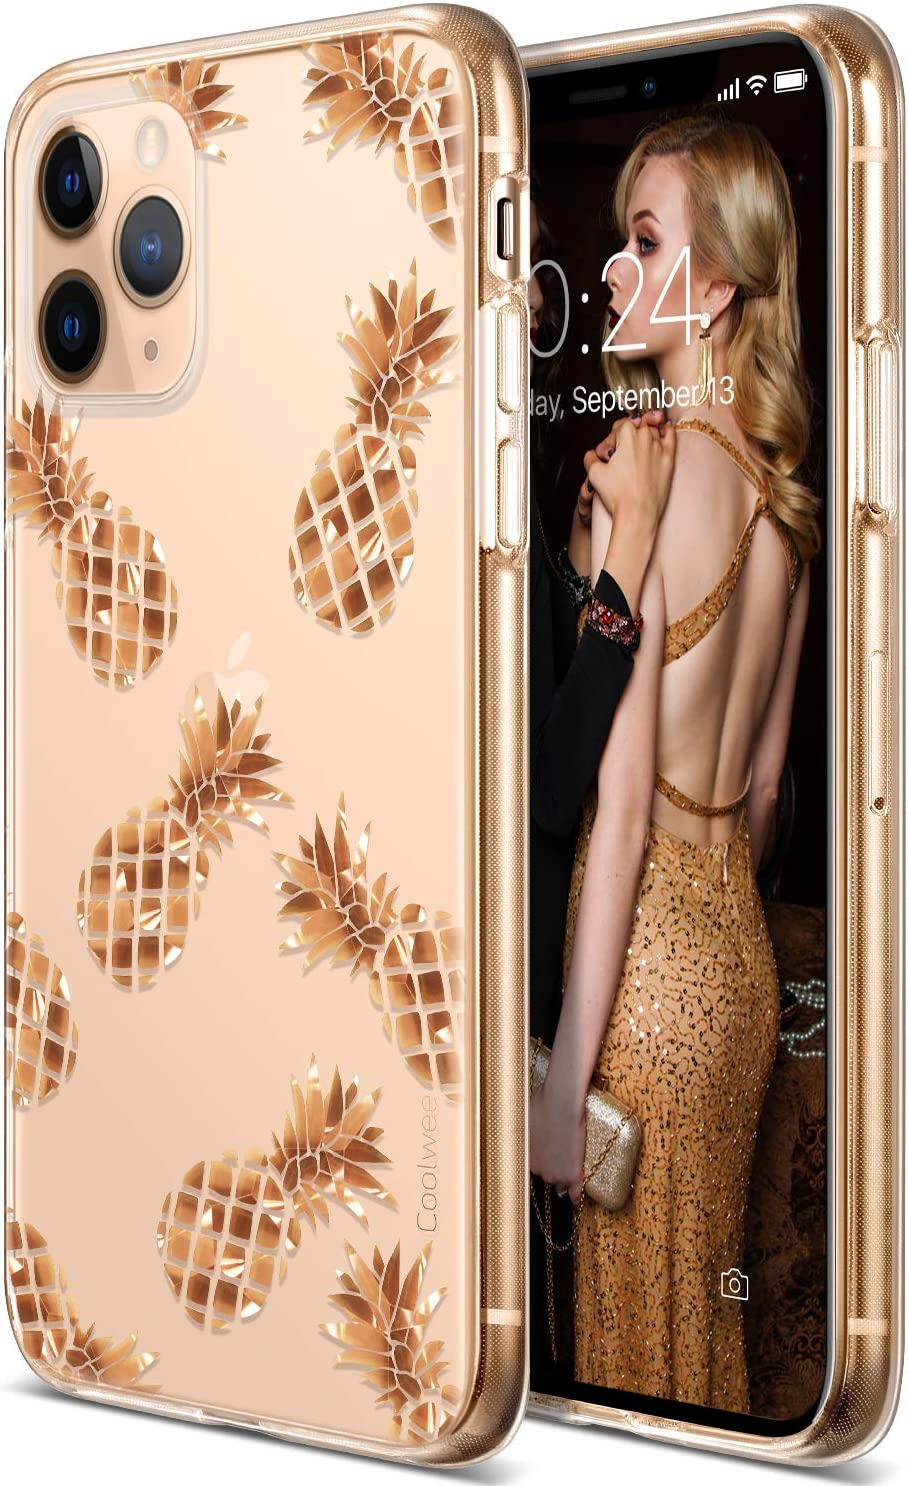 Coolwee for Phone 11 Pro Case Rose Gold Pineapple Floral Case Women Girl Men Foil Clear Design Shiny Glitter Hard Back Case with Soft TPU Bumper Cover for Apple iPhone 11 Pro 5.8 inch 2019 Pineapple